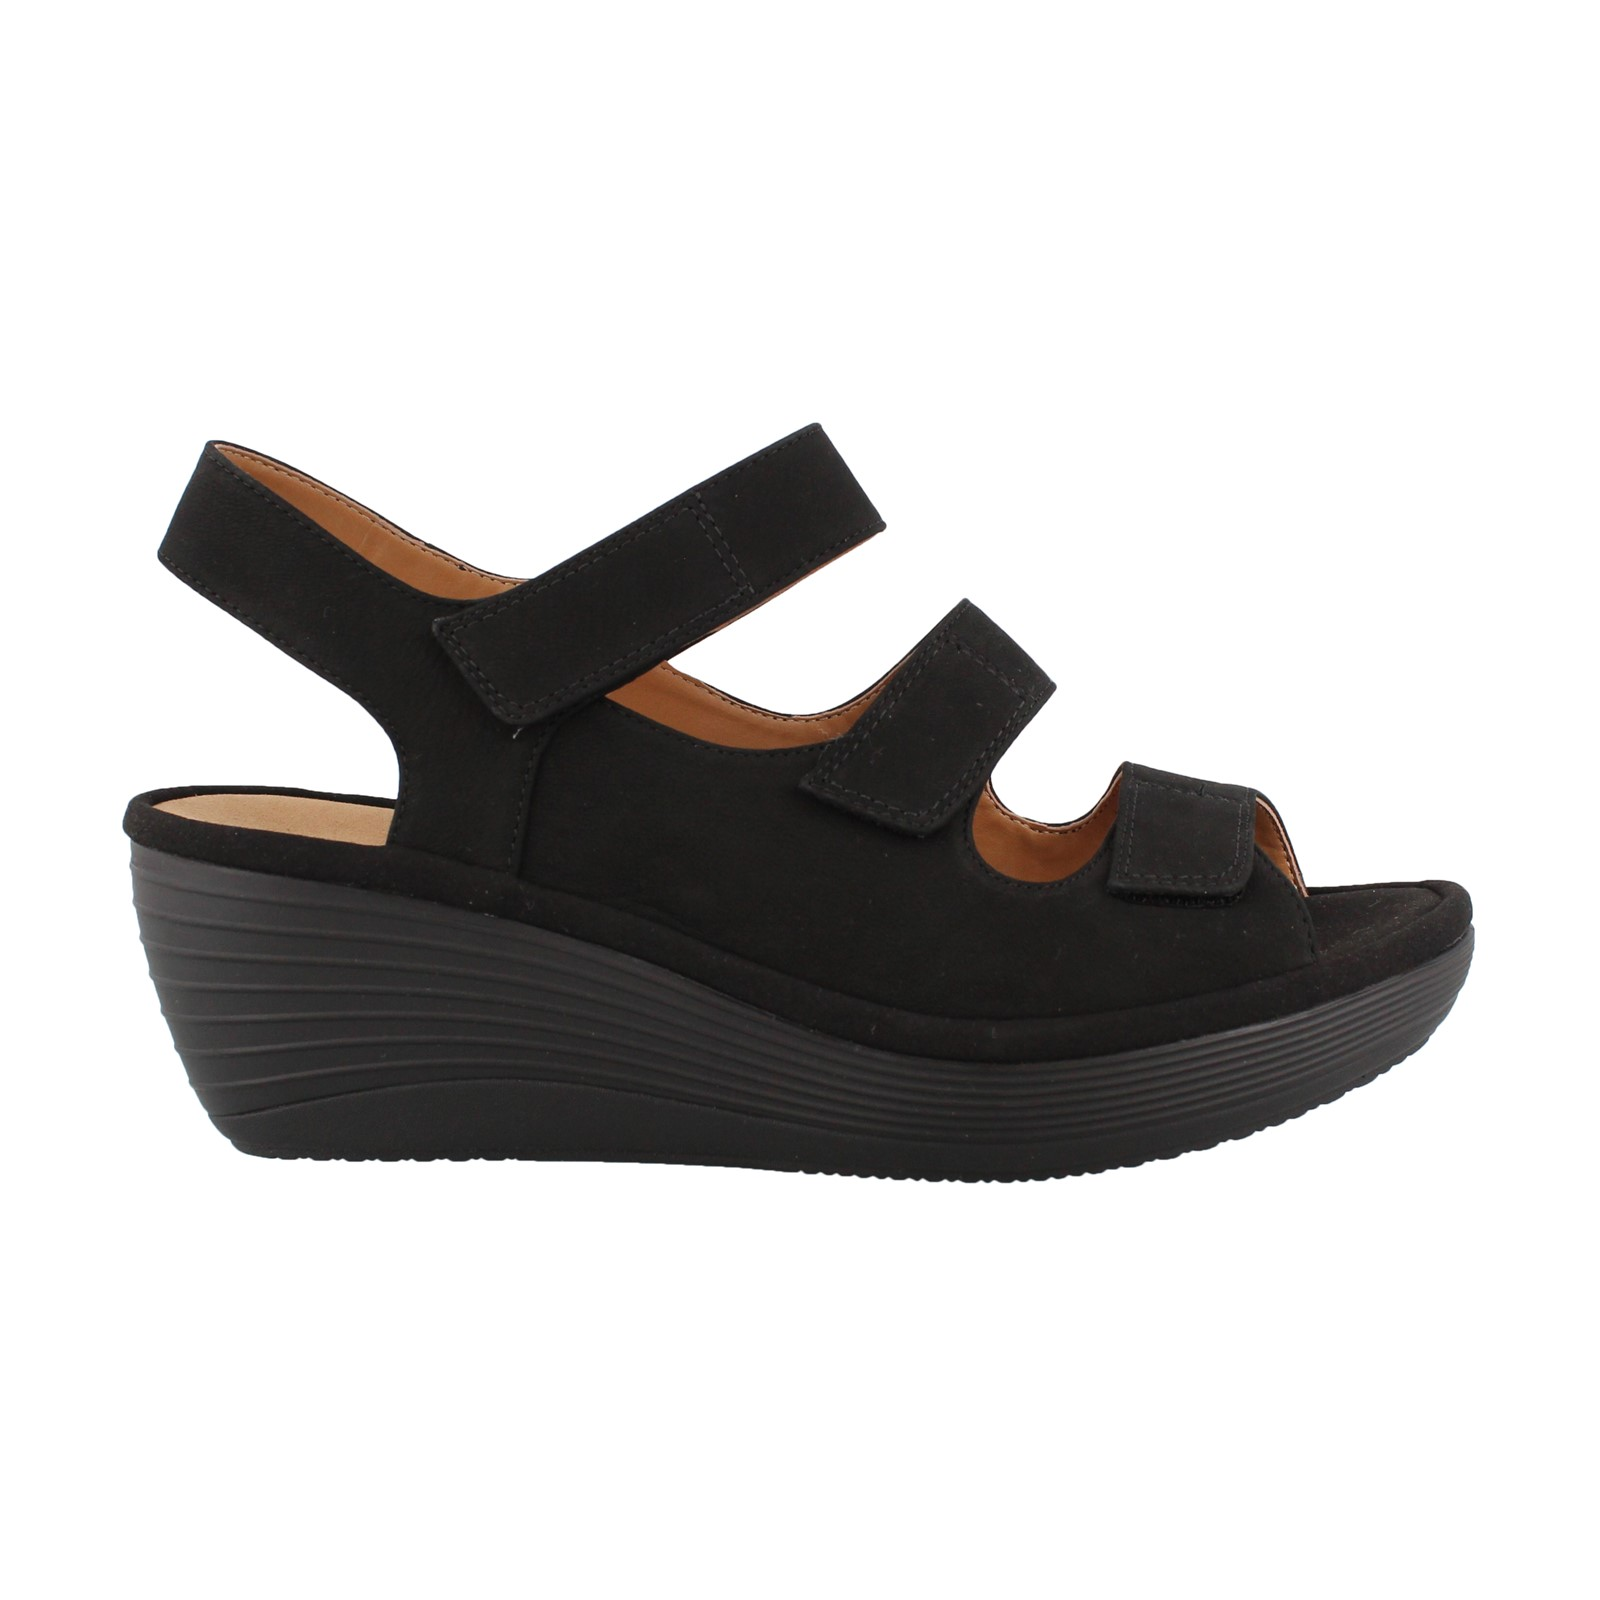 Women's Clarks, Reedly Juno Mid Heel Wedge Sandals